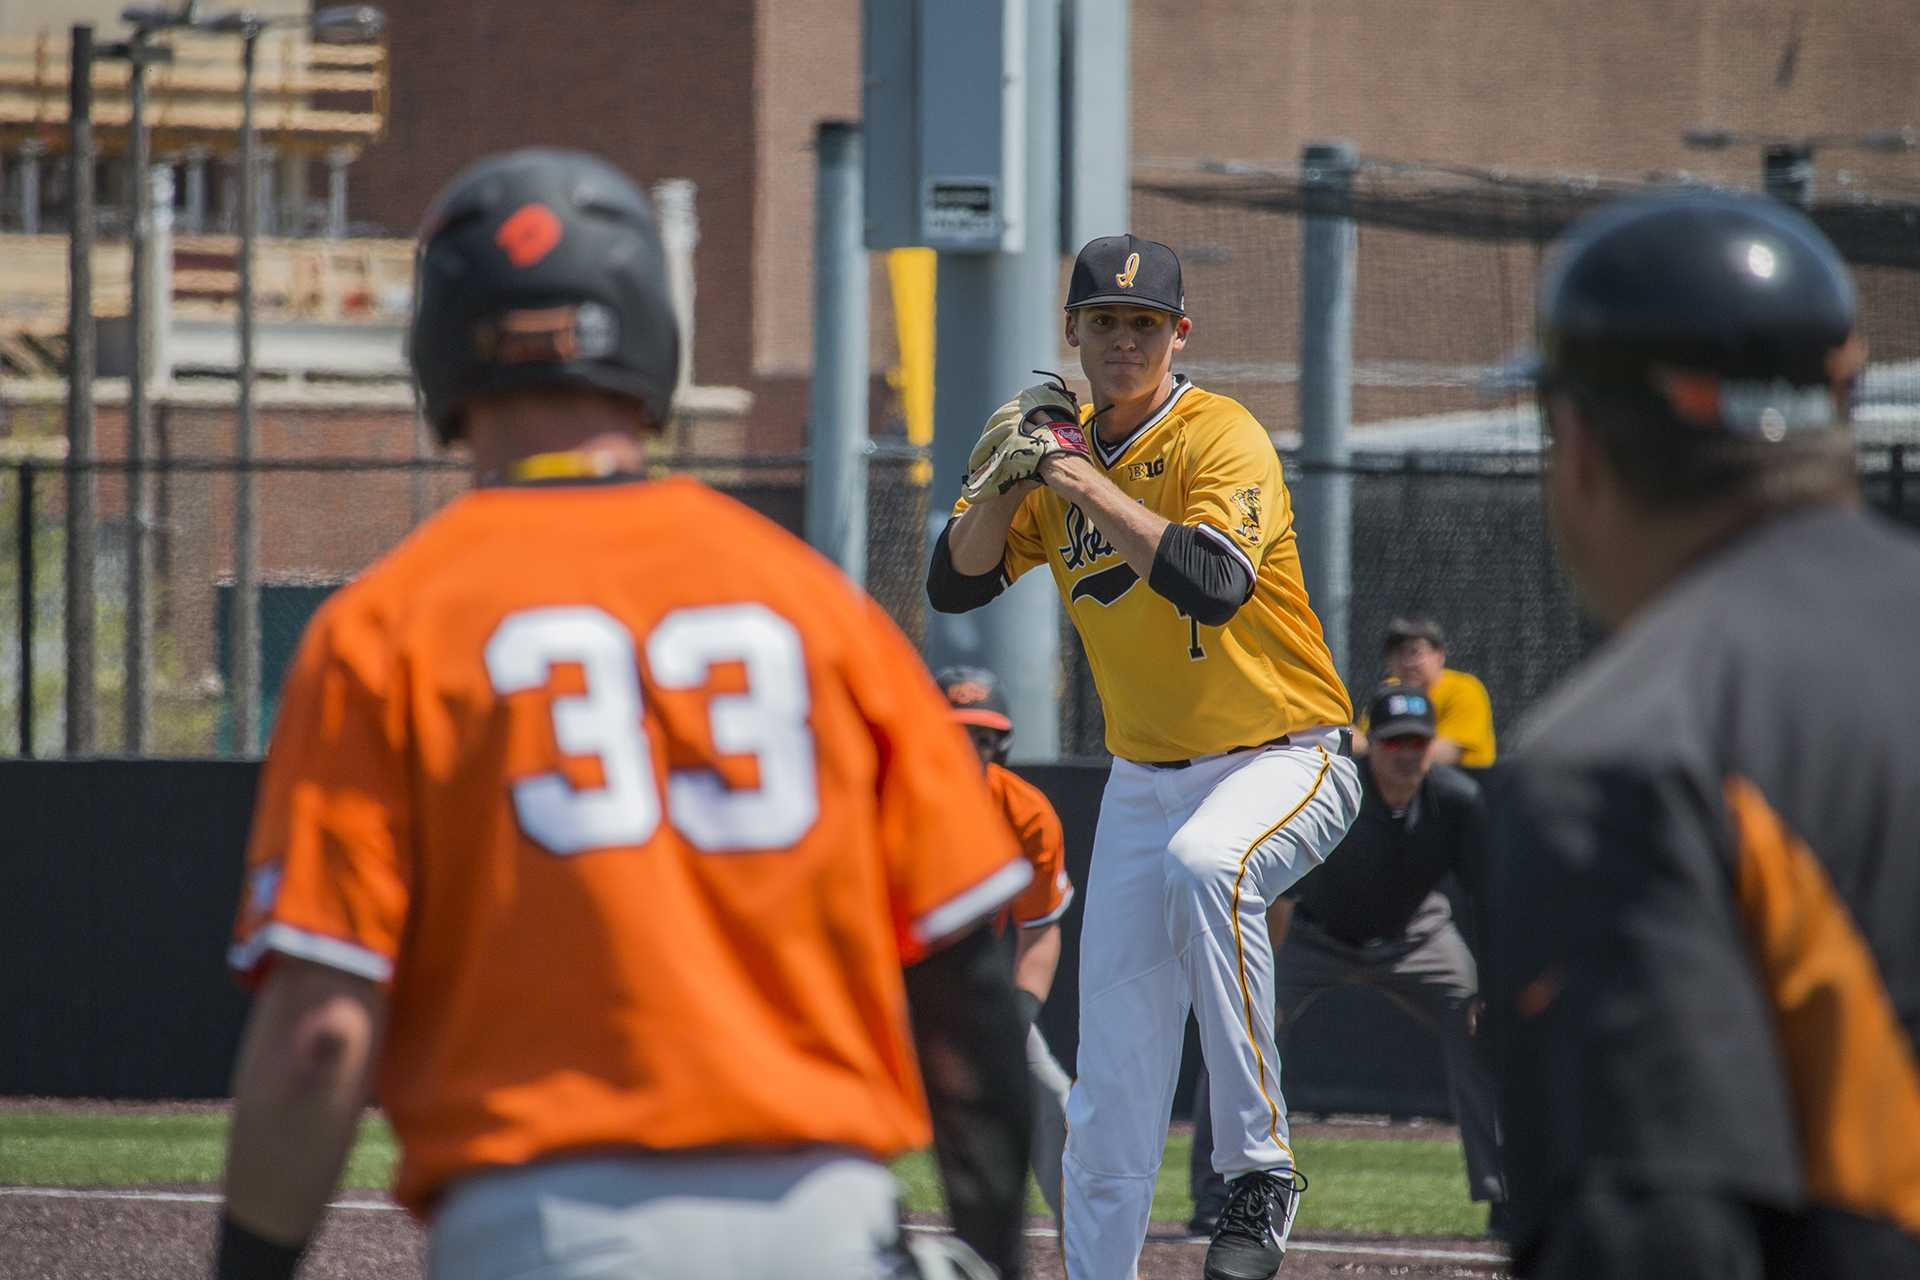 Iowa pitcher Grant Judkins prepares to throw the ball during baseball Iowa vs. Oklahoma State at Duane Banks Field on May 6, 2018. The Hawkeyes defeated the Cowboys 11-3.  (Katina Zentz/The Daily Iowan)